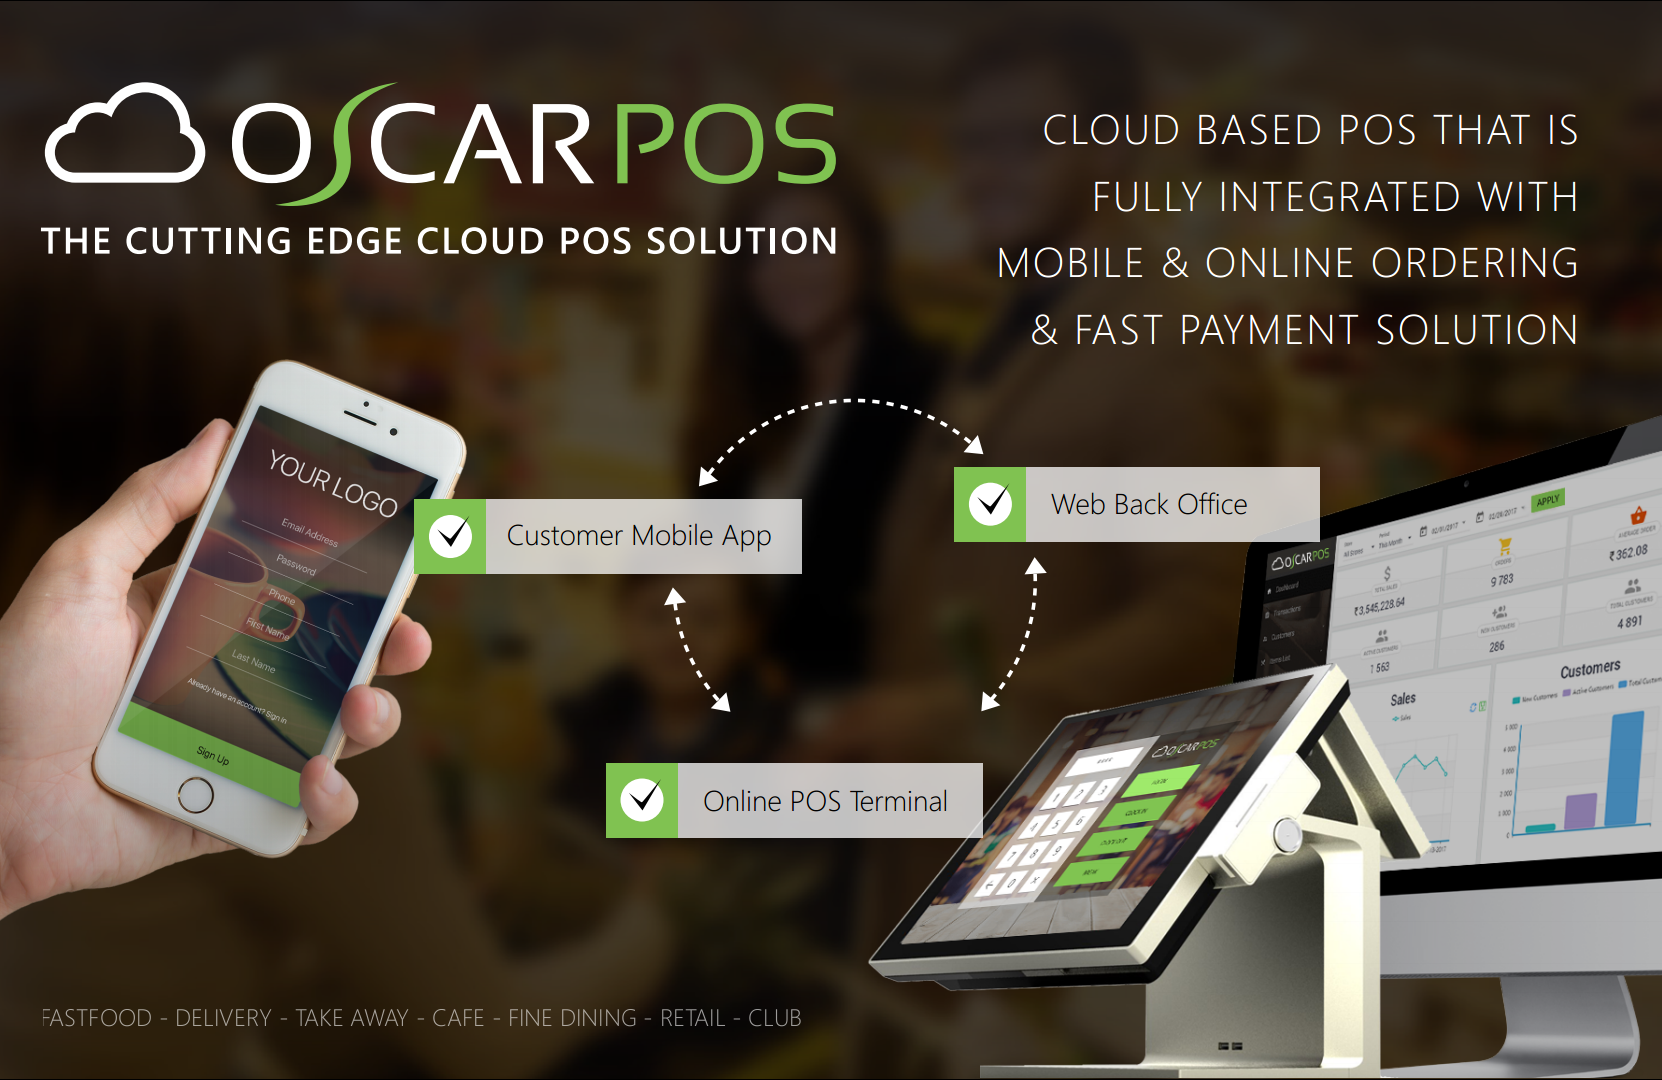 OscarPOS Cloud - Fully Integrated Ordering with Mobile APP & Fast Payment Sollution